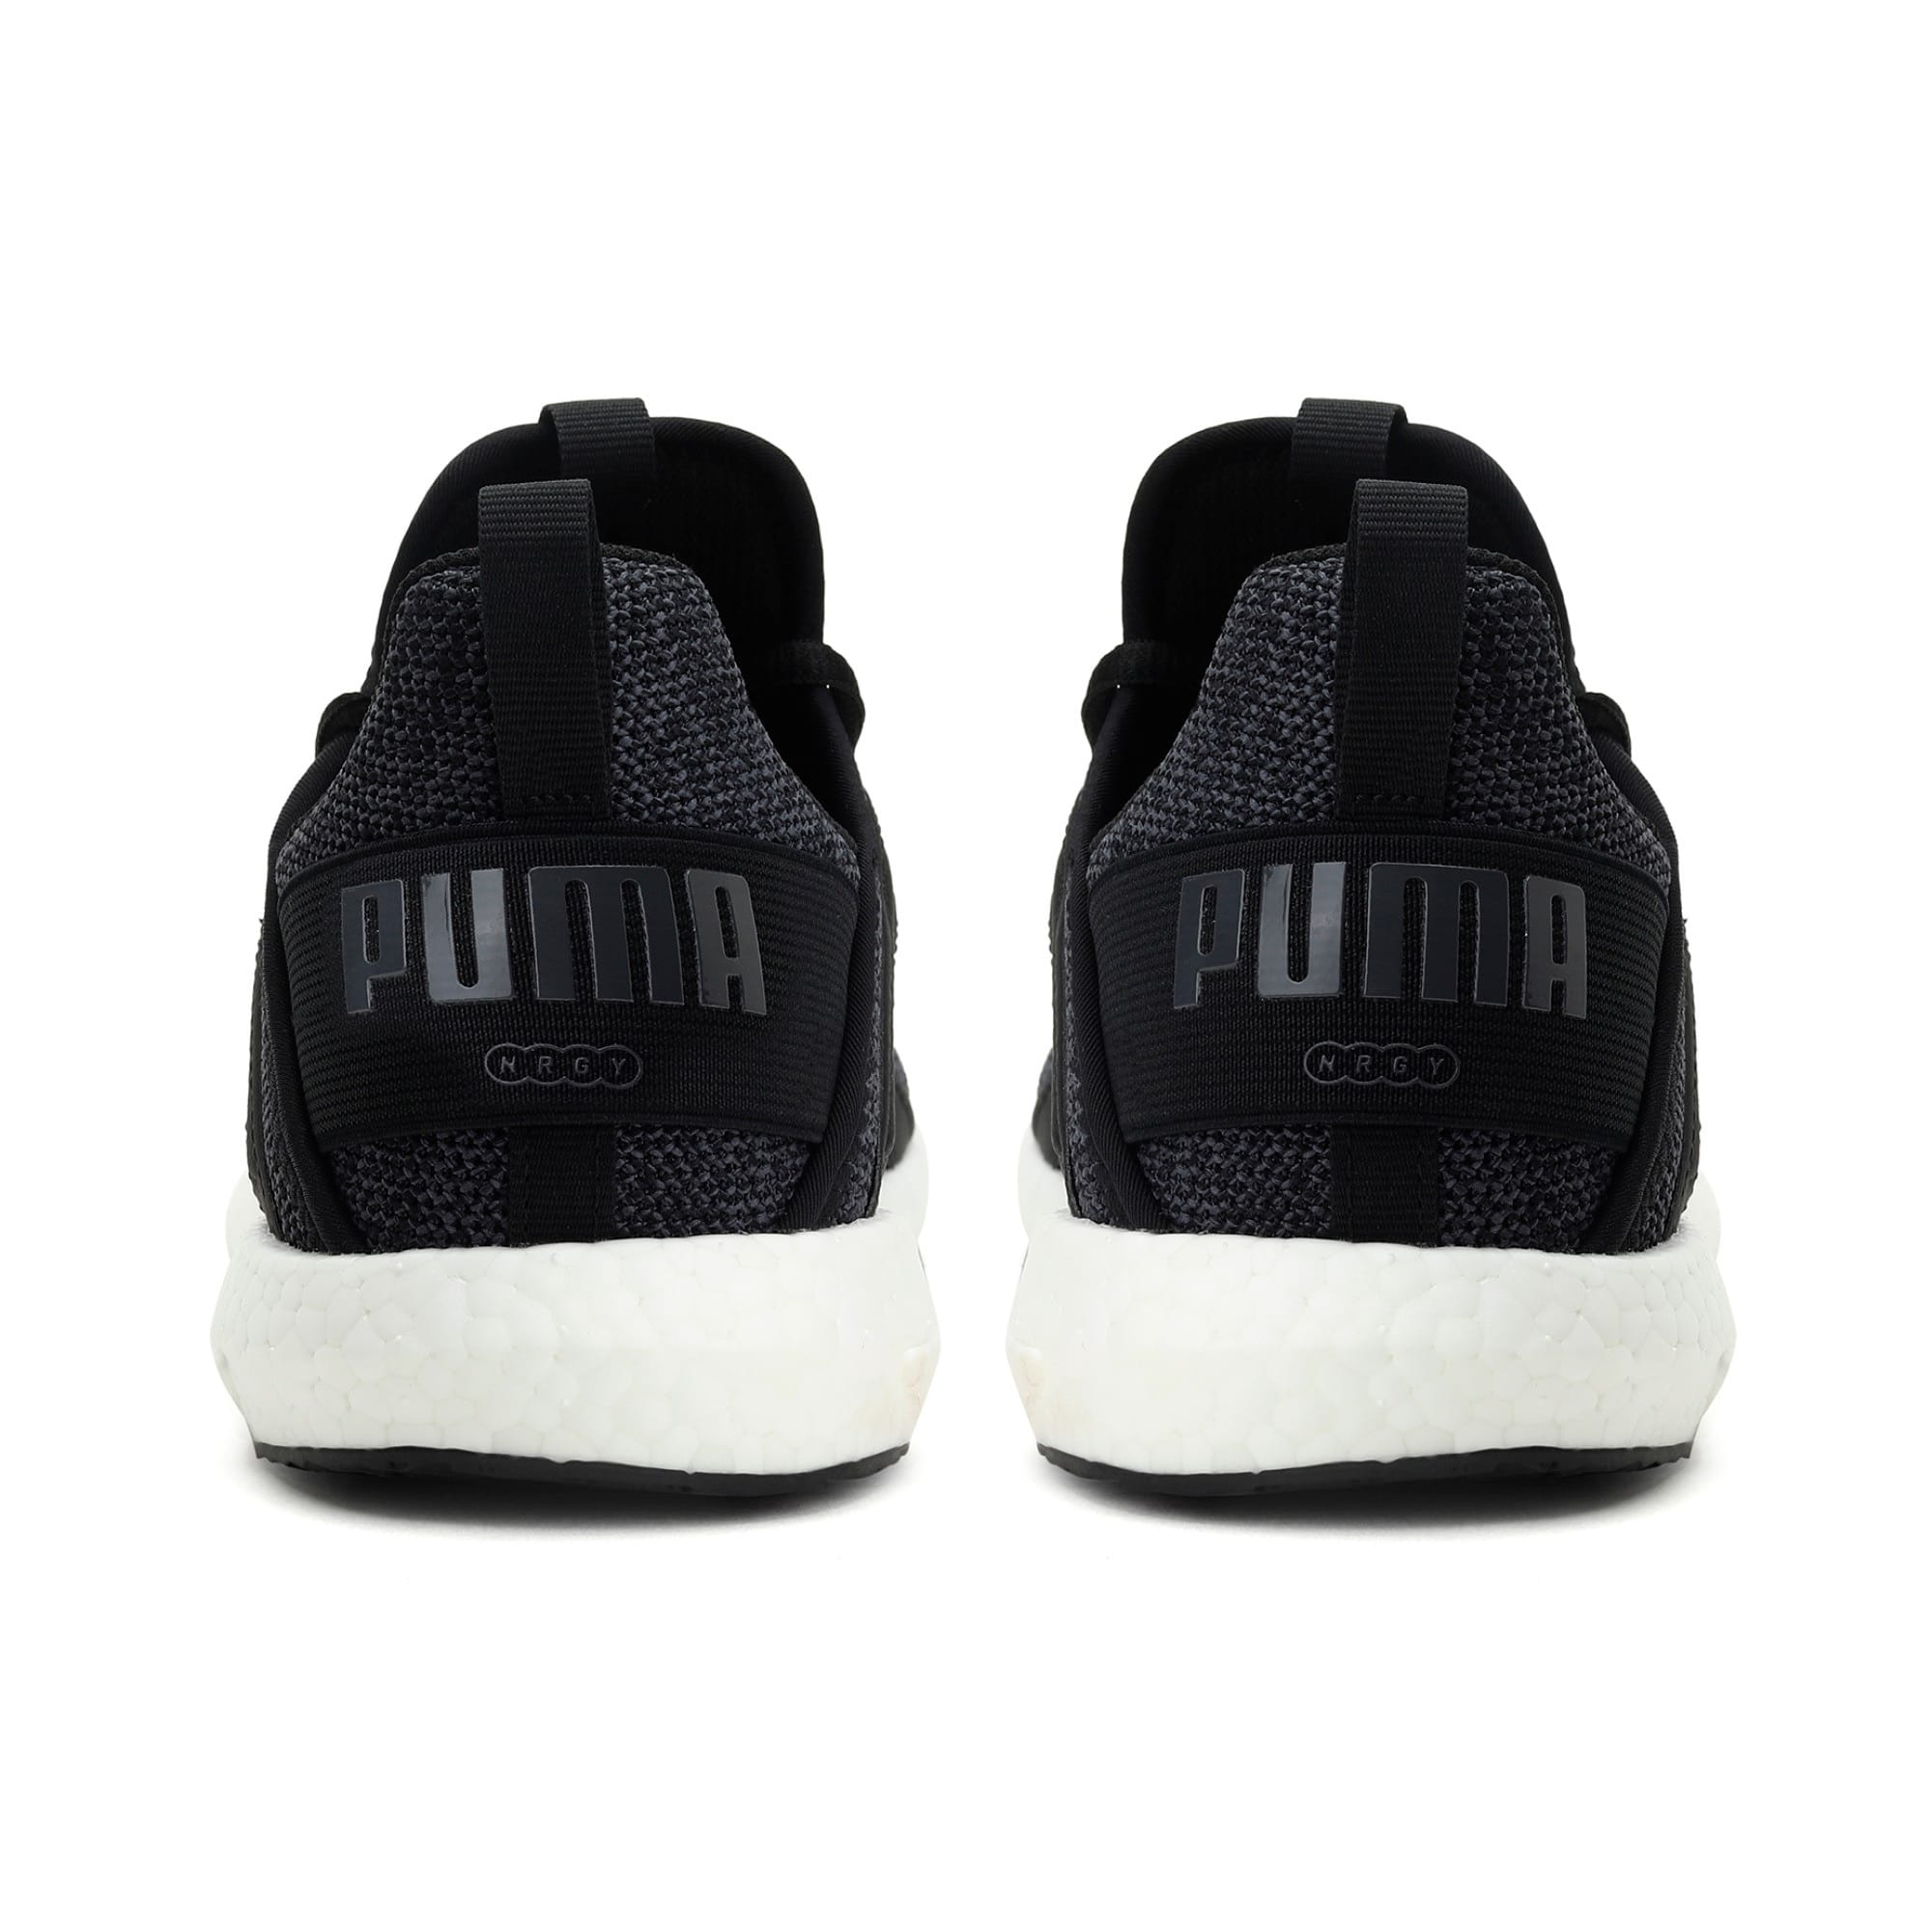 Thumbnail 3 of Mega NRGY Knit Women's Trainers, Puma Black-Asphalt, medium-IND